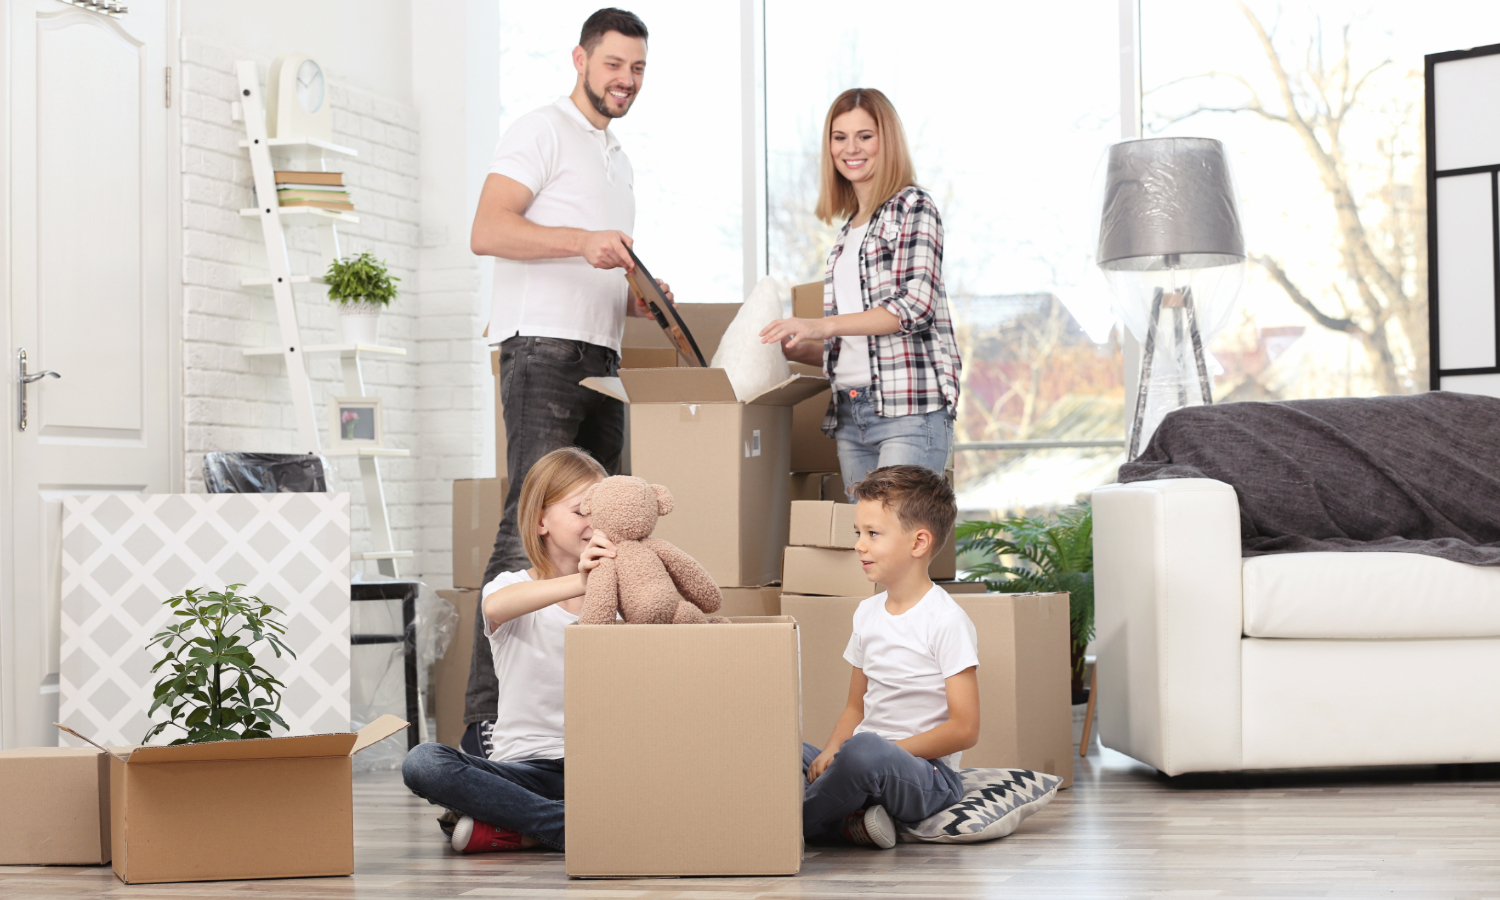 Moving to Houston This Summer- Here are 6 Tips to Survive the Move